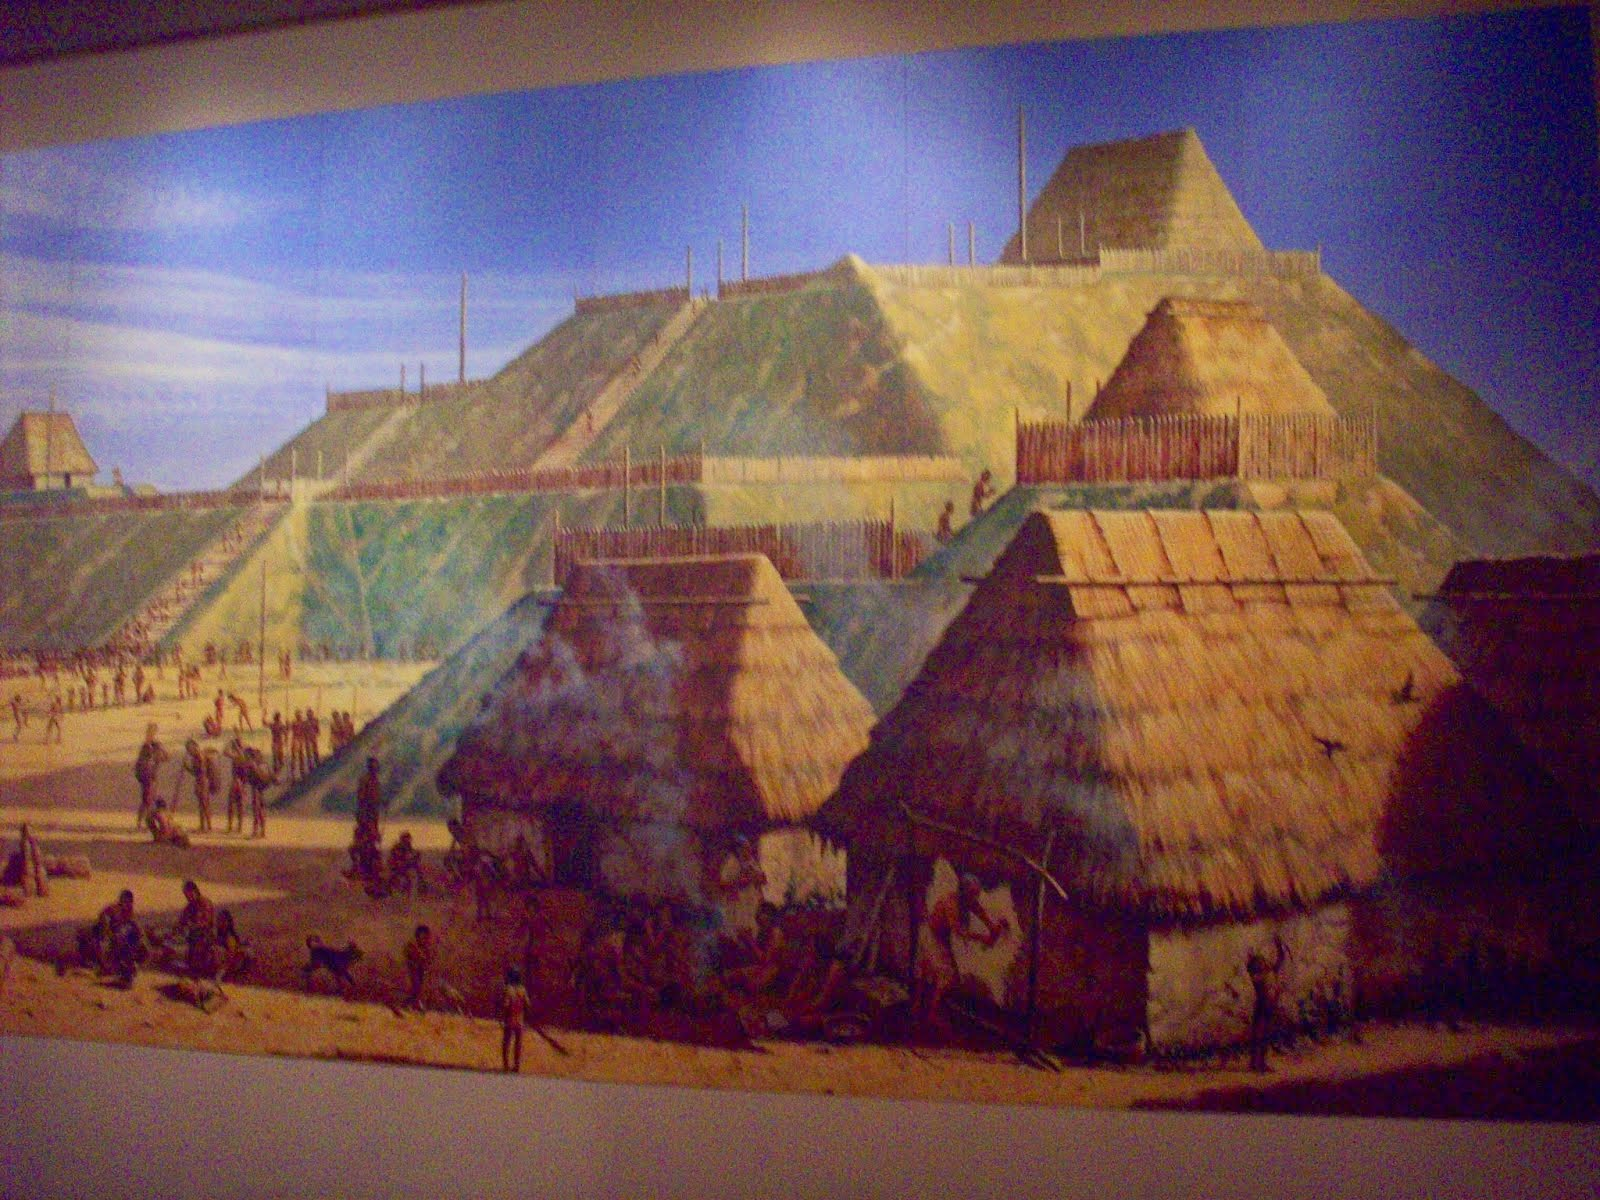 one of the greatest cities of north america cahokia was larger than london and paris were in ad 1250 the largest prehistoric native american sites north